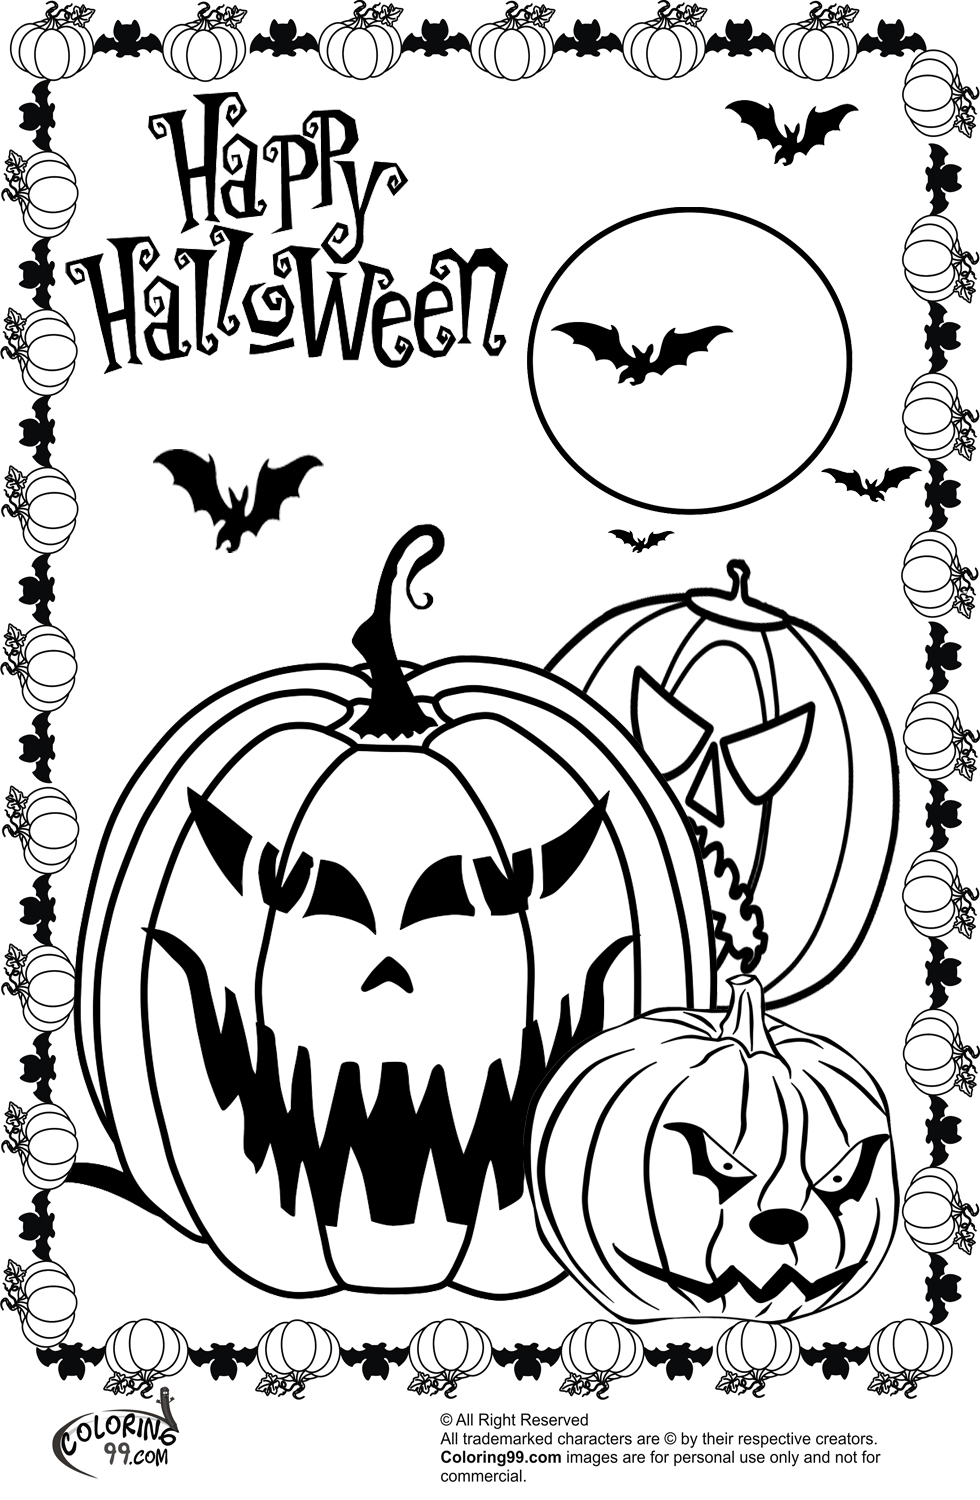 halloween pictures to color pumpkin pumpkin color realistic coloring pages pumpkin pictures halloween to color